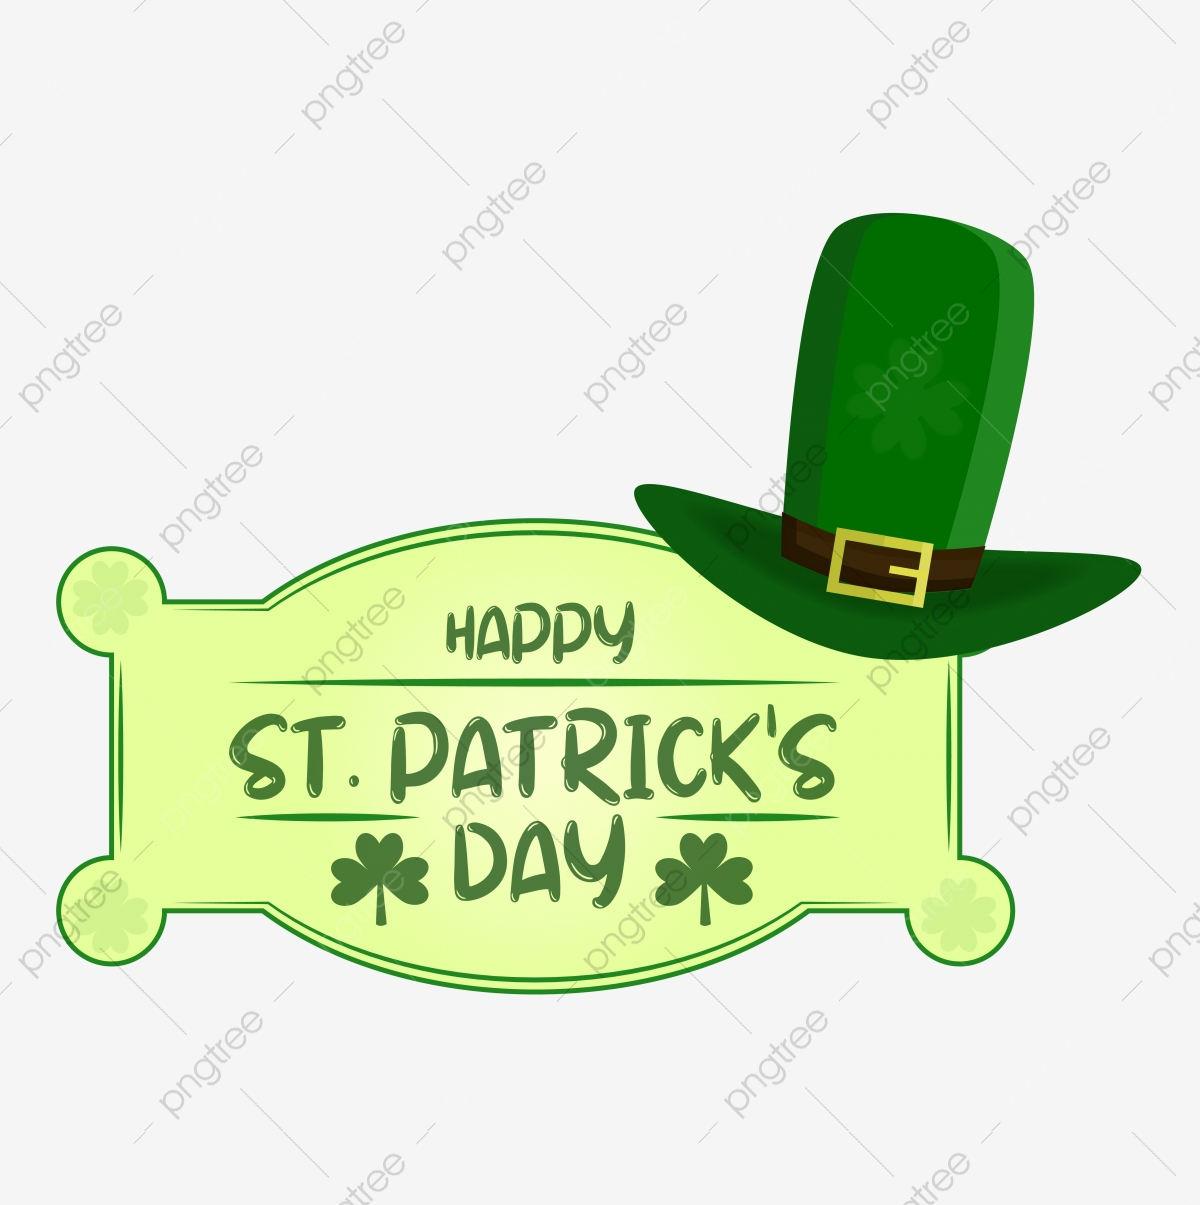 Happy St Patrick S Day Frame Clipart Vector Png Element Party Pot Of Luck Celebration Png And Vector With Transparent Background For Free Download